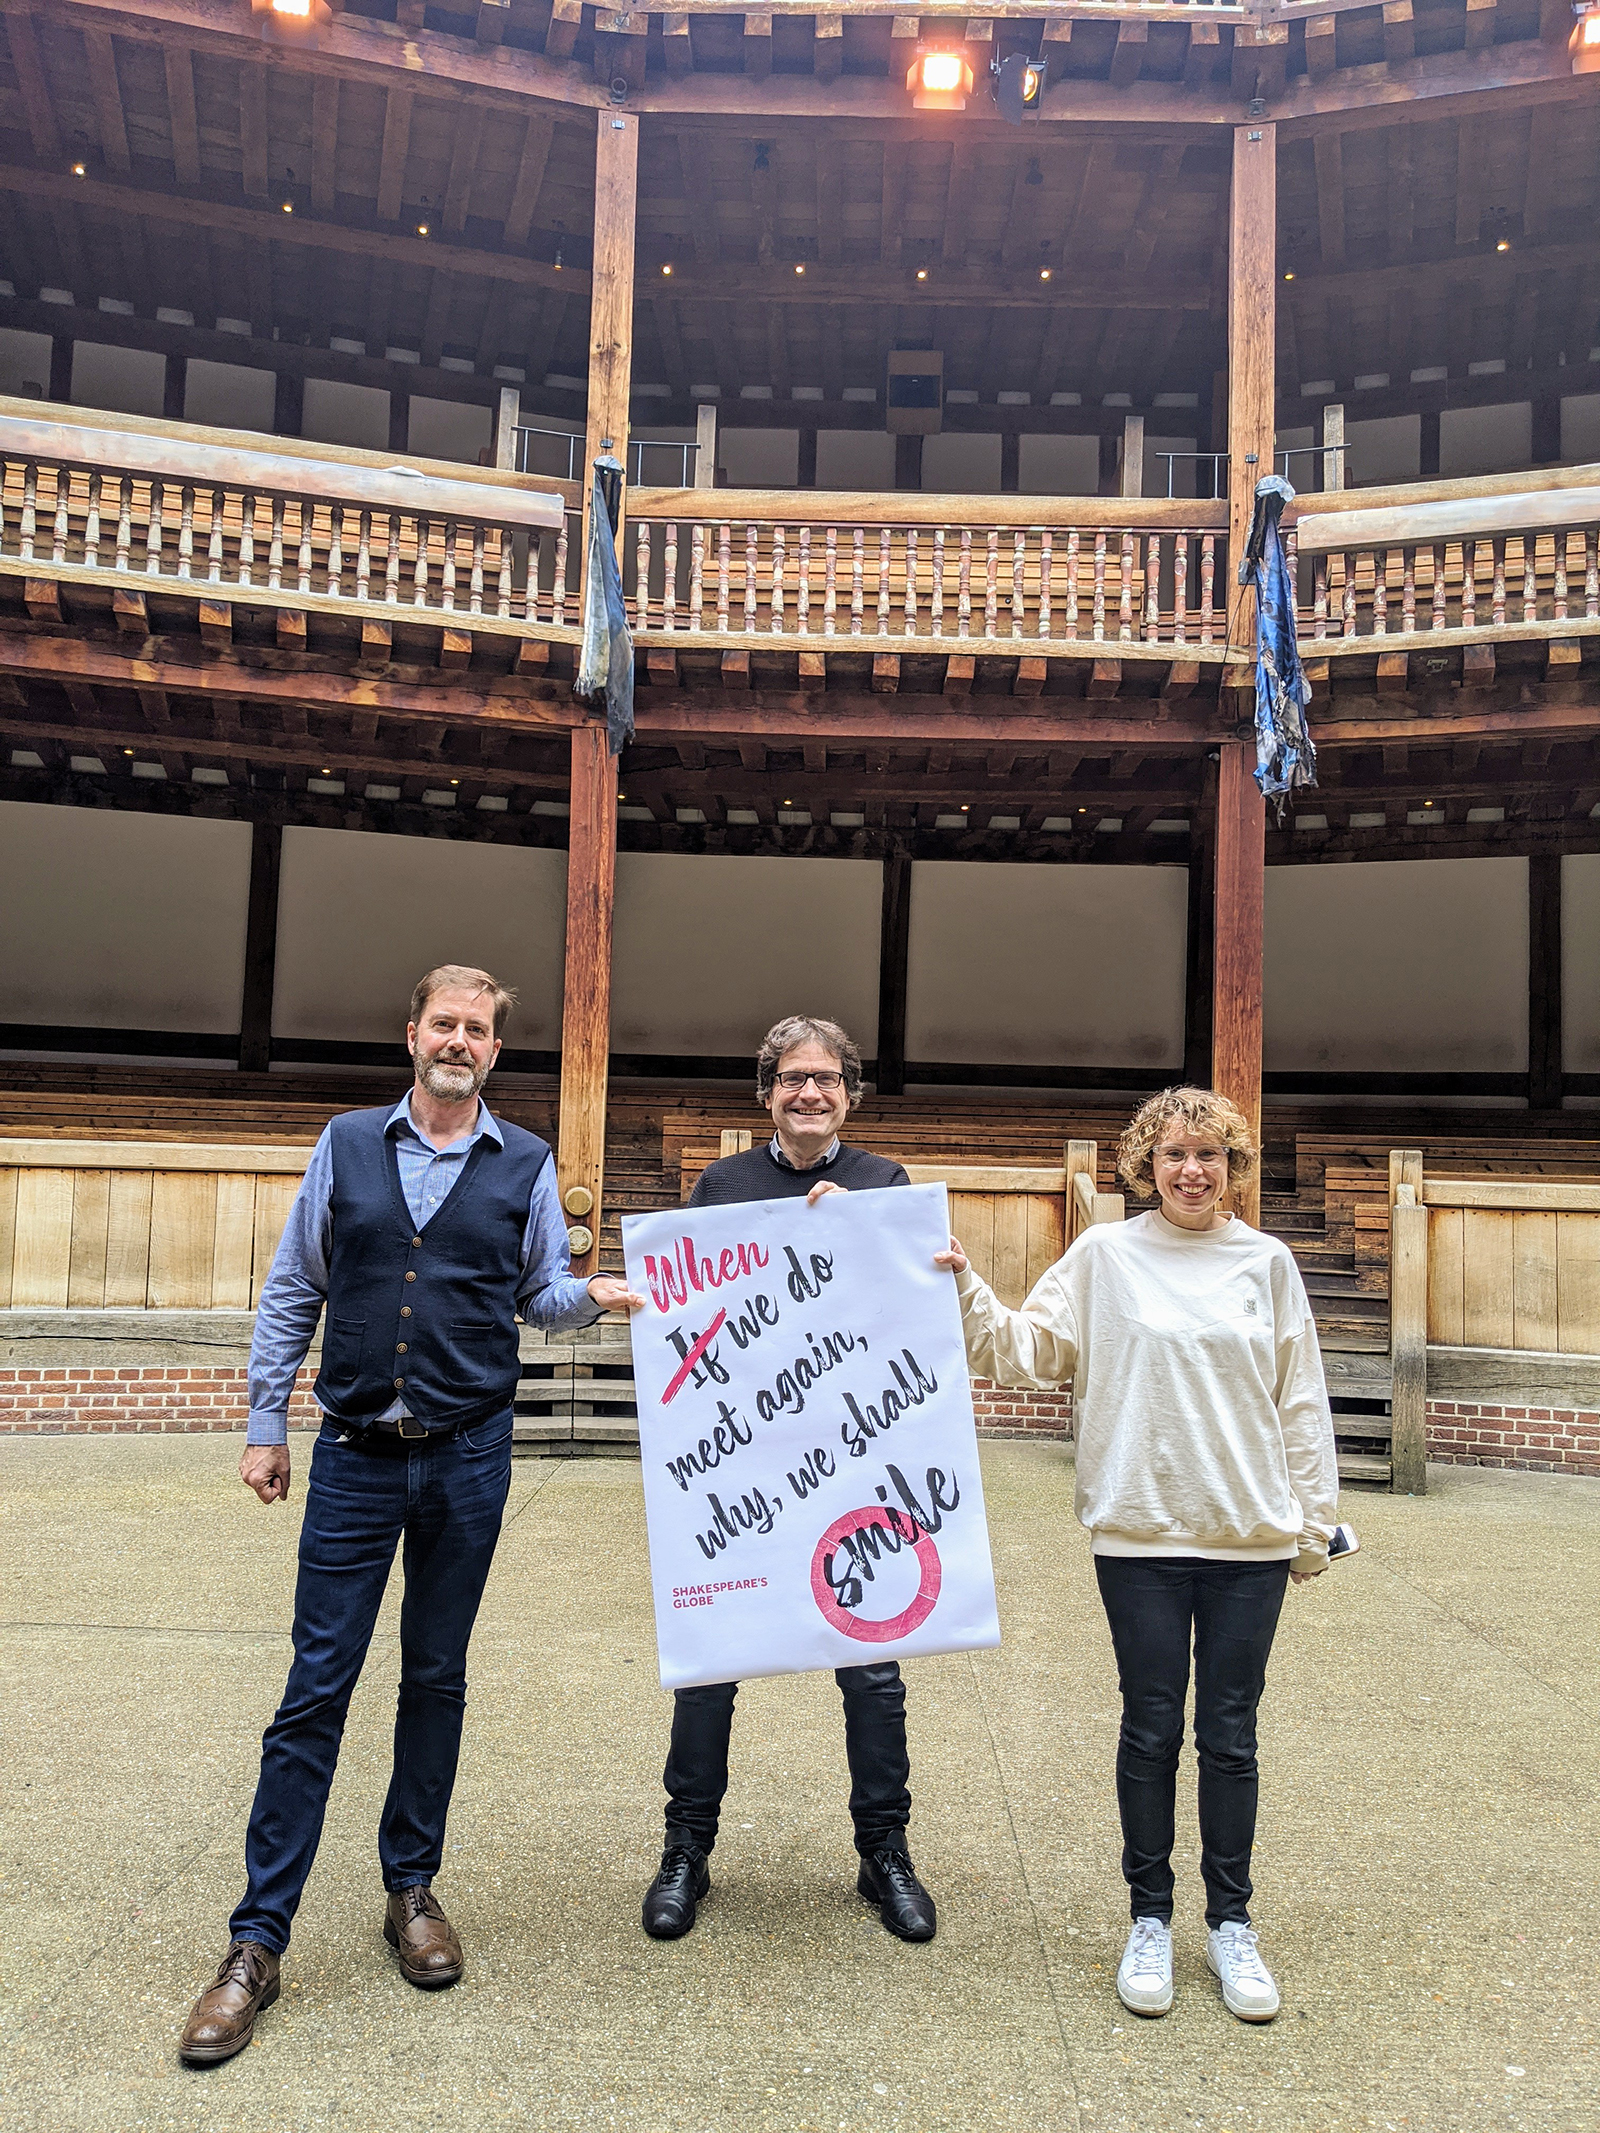 Neil Constable, Patrick Spottiswoode and Michelle Terry in the Globe Theatre